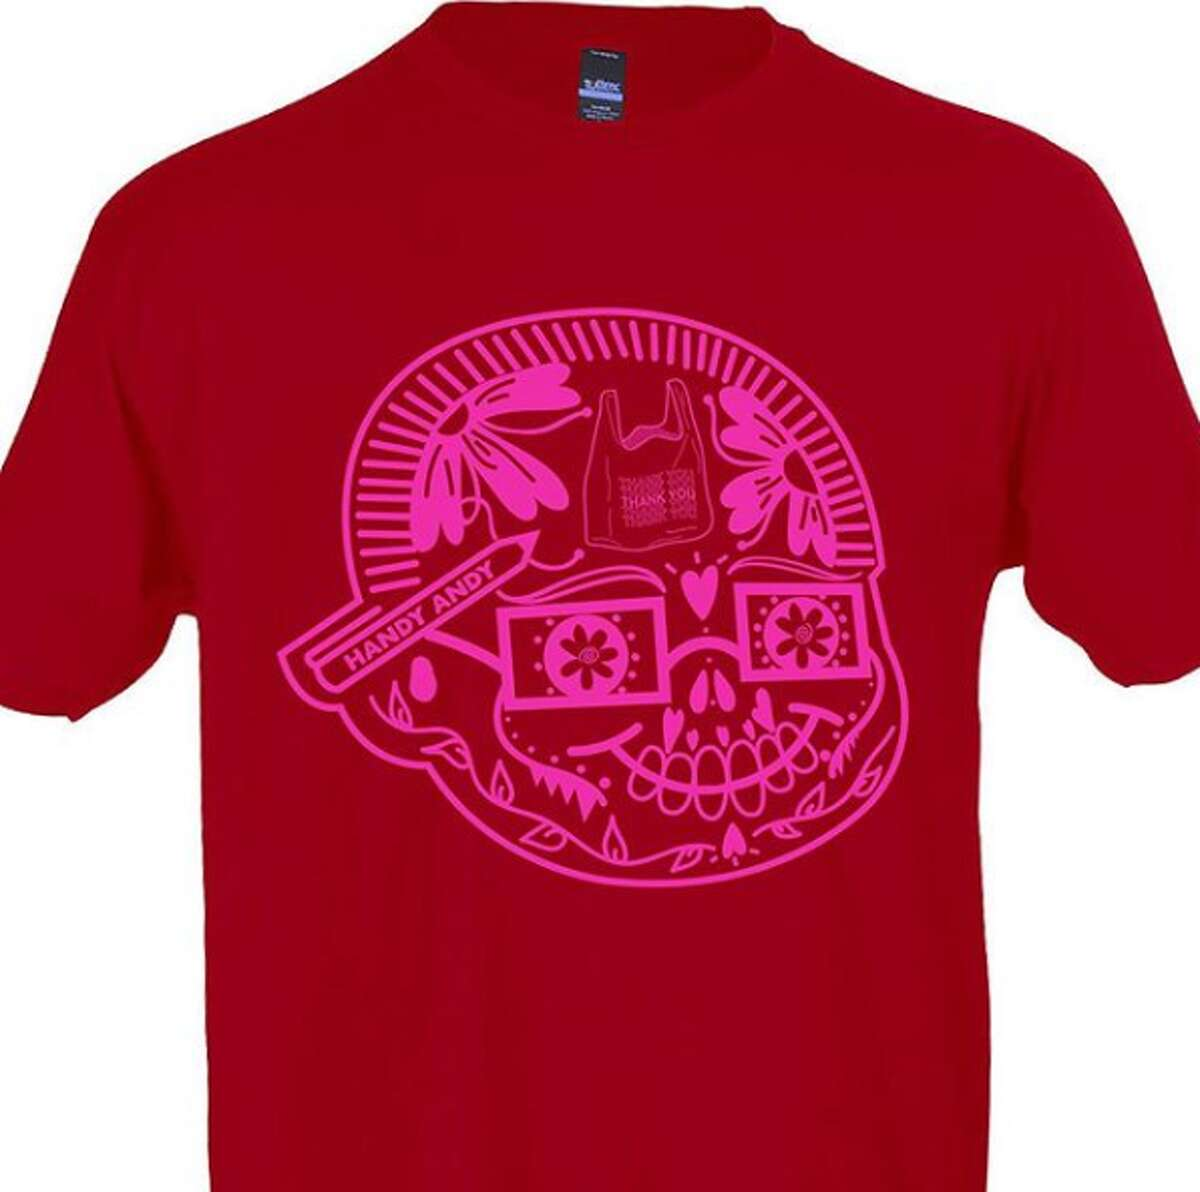 """BarbacoApparel, the San Antonio brand known creating T-shirts touting Tex-Mex pride, now has an """"Andy was Here"""" shirt to pay homage to Handy Andy grocery stores."""